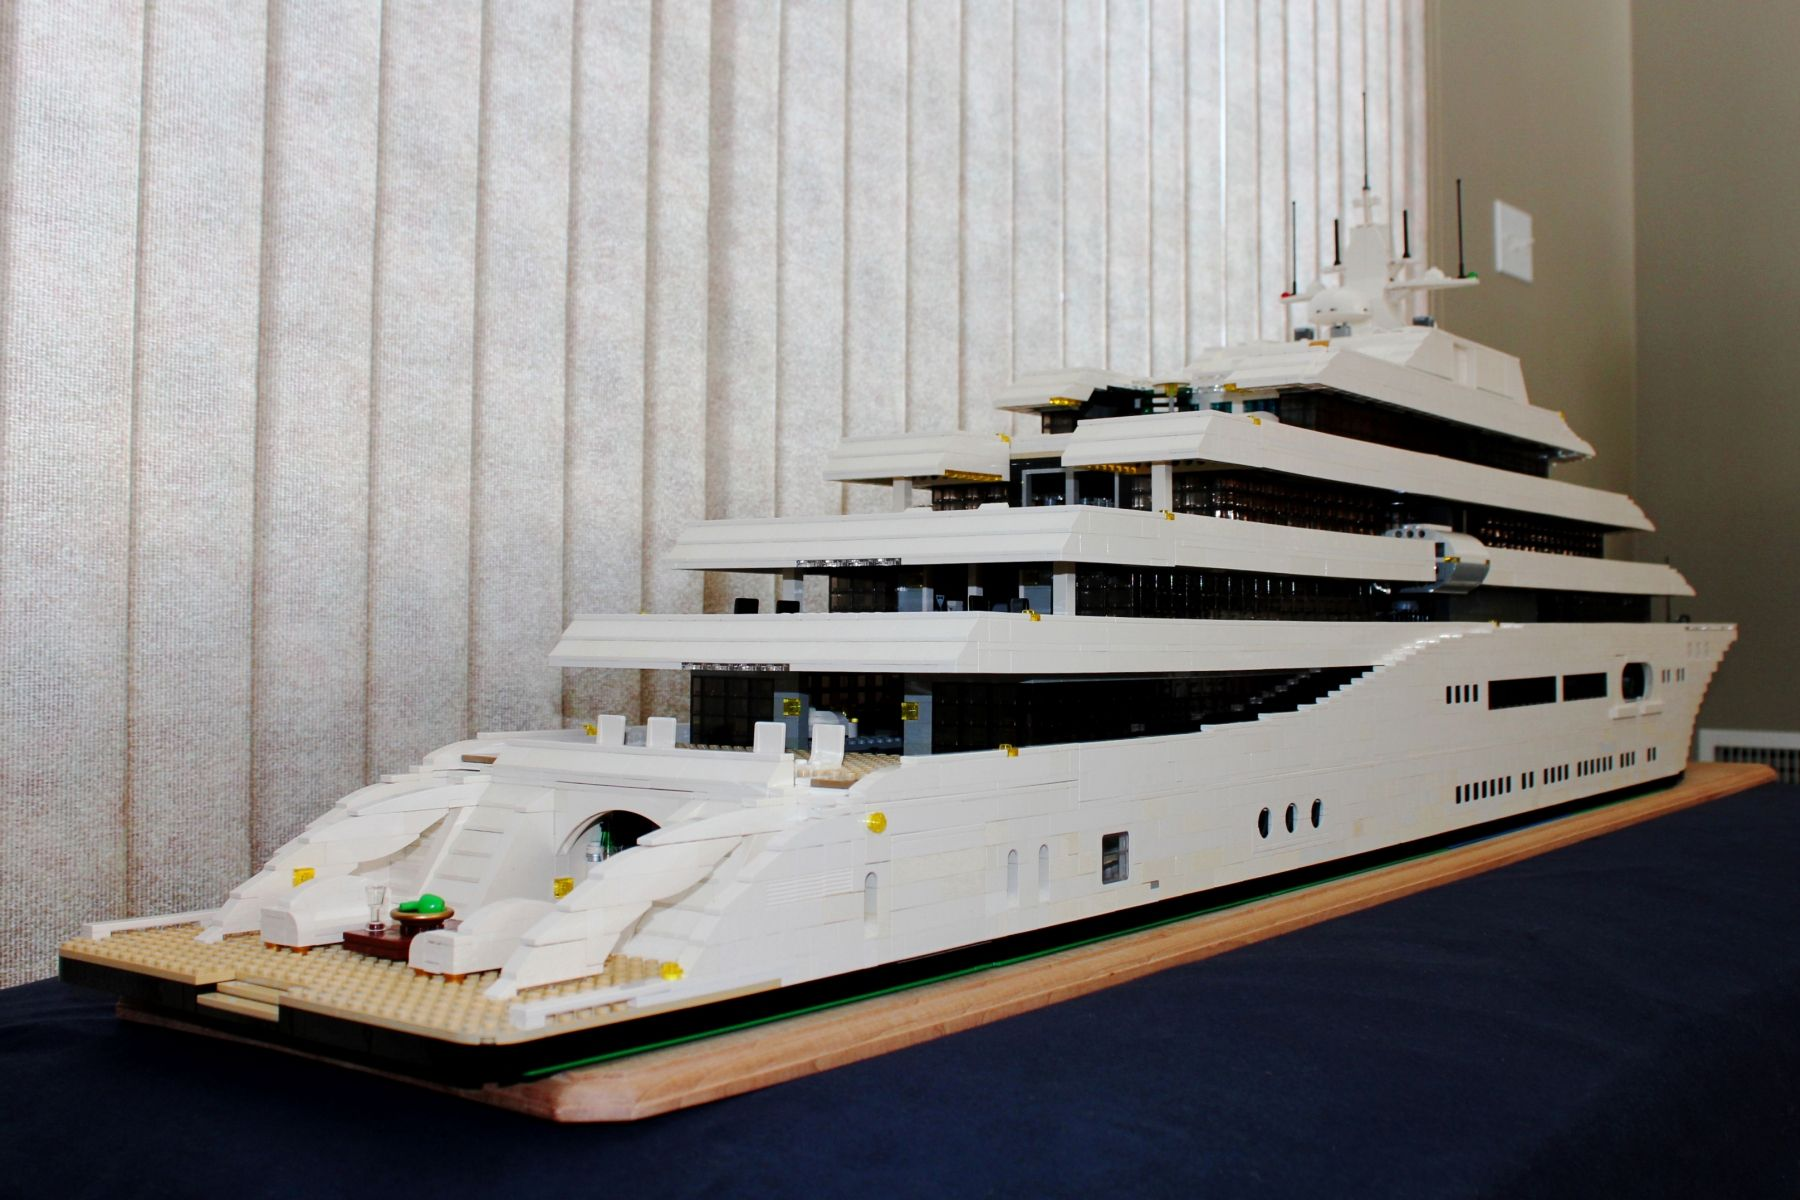 5 Room Floor Plan Lego Mega Yacht Keith Orlando